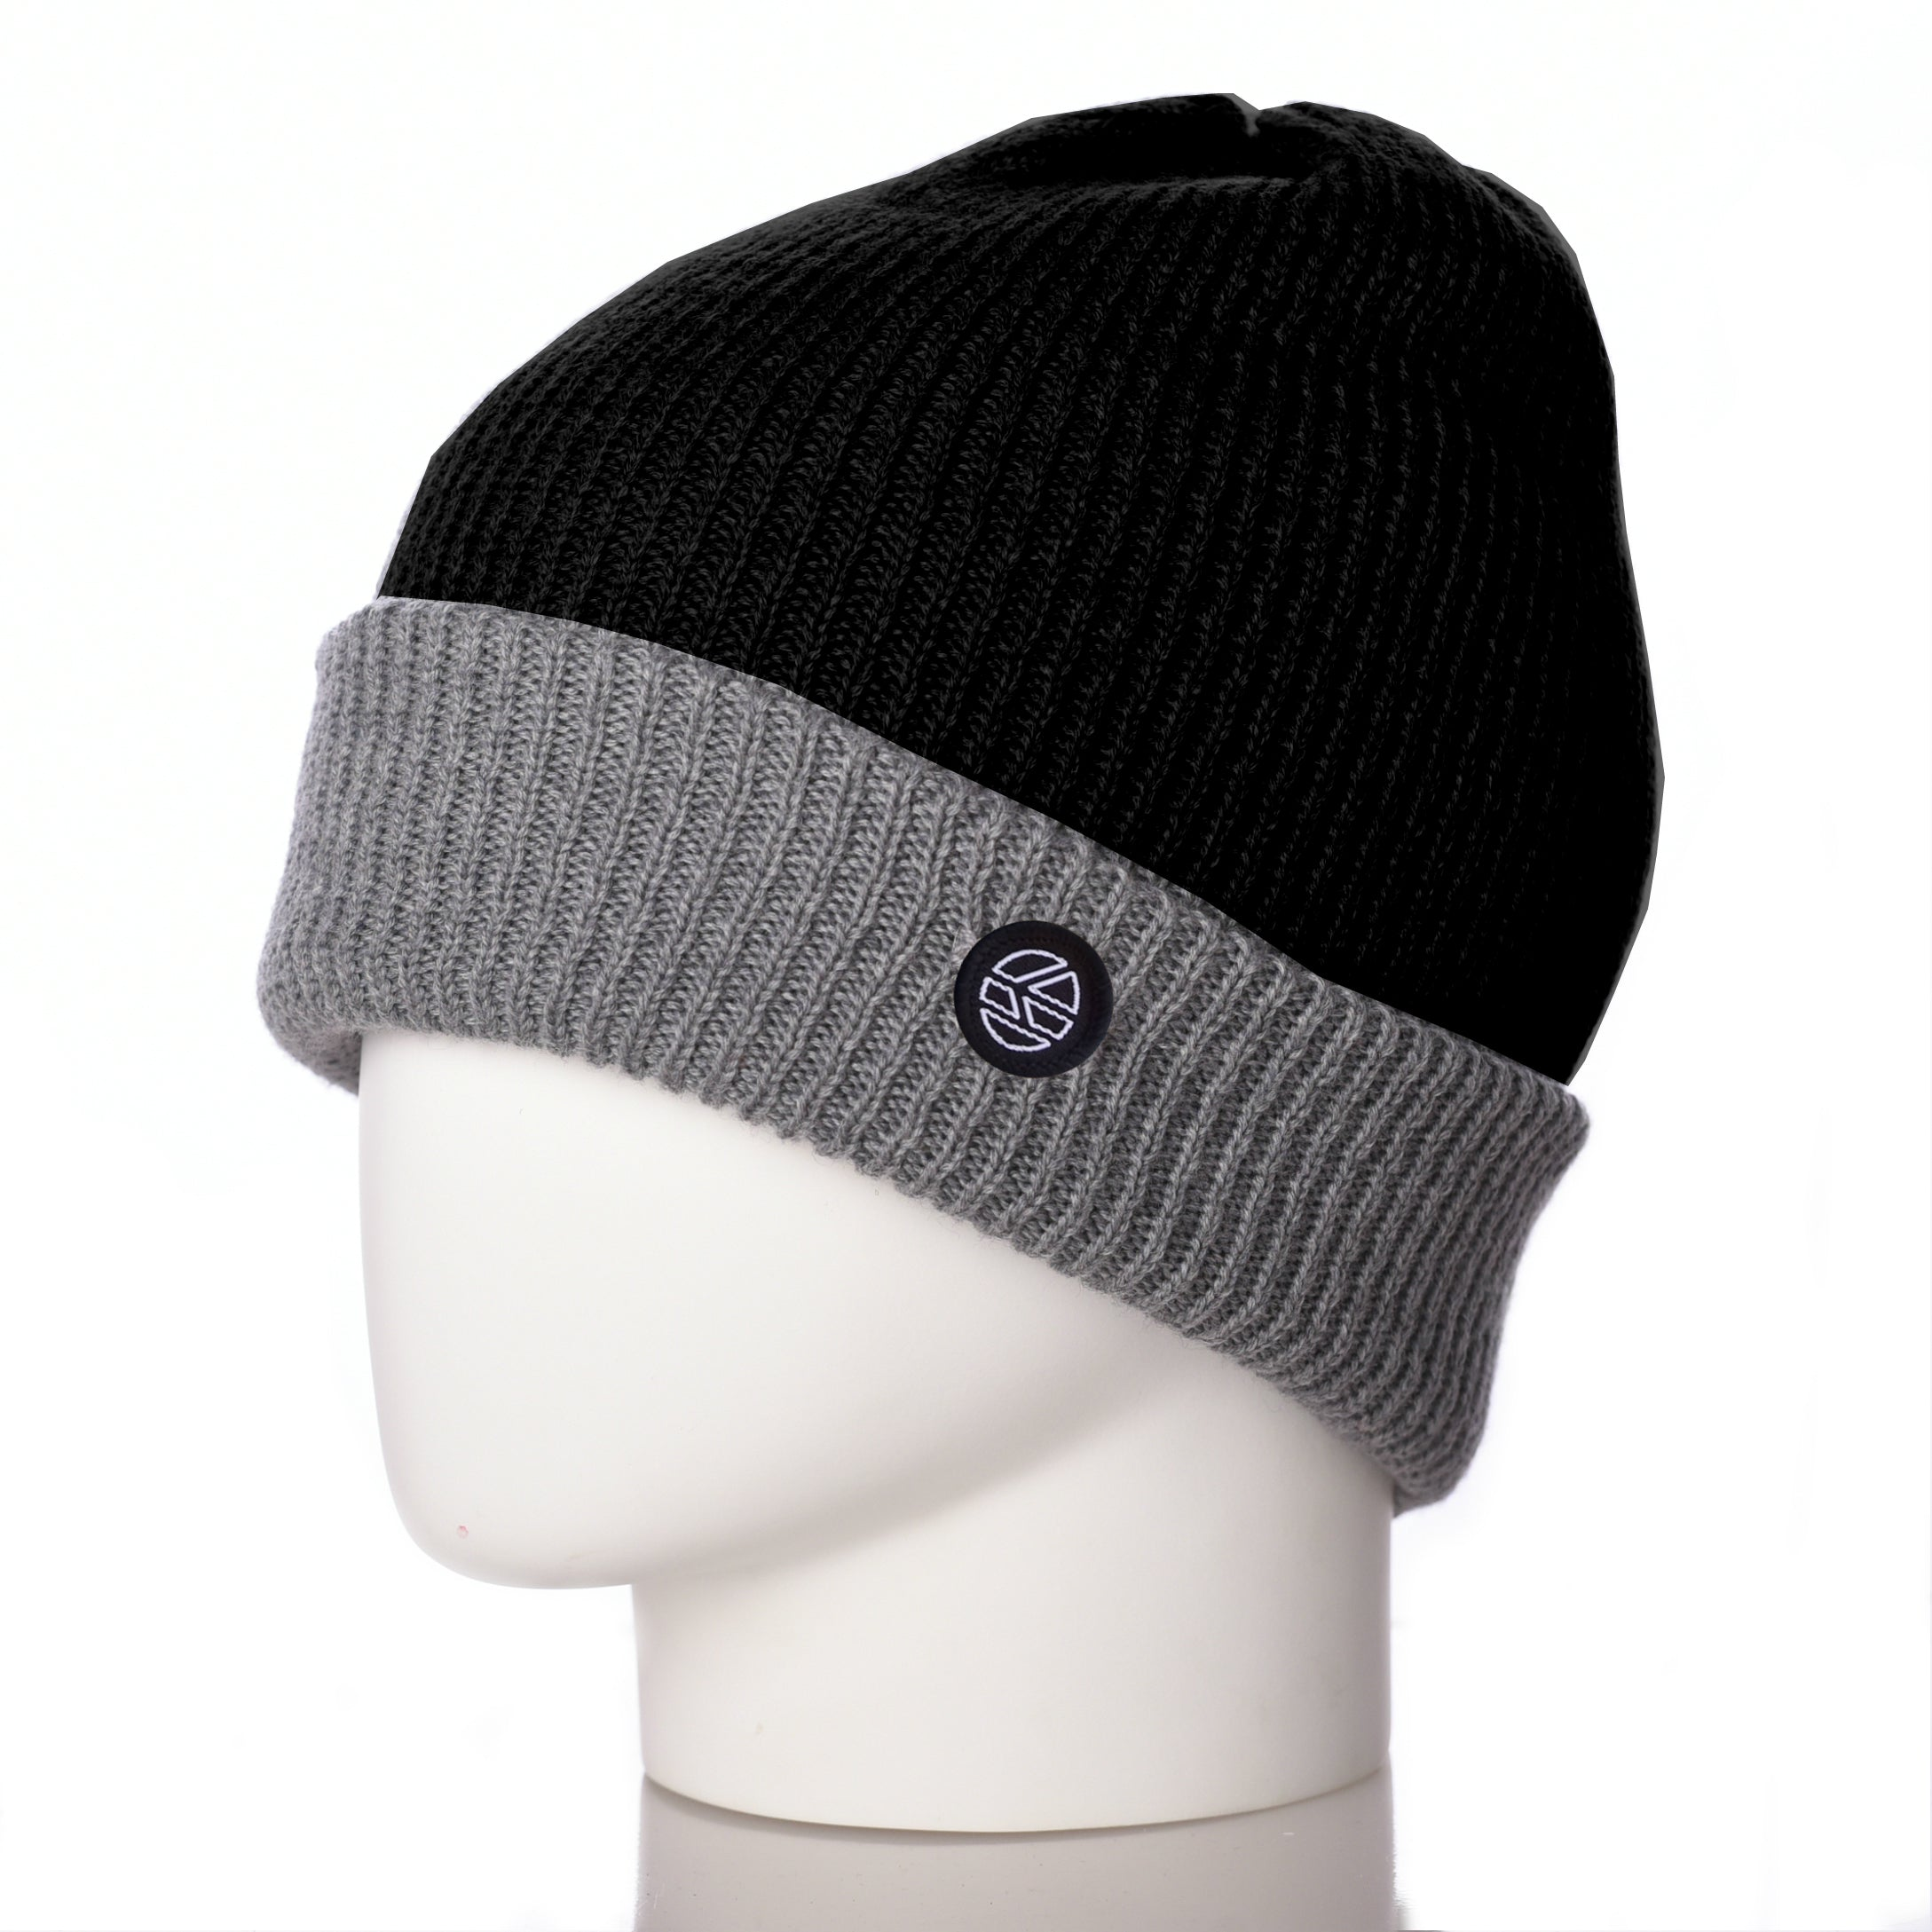 Bowen Turn Up Merino Wool Beanie - Black/Grey